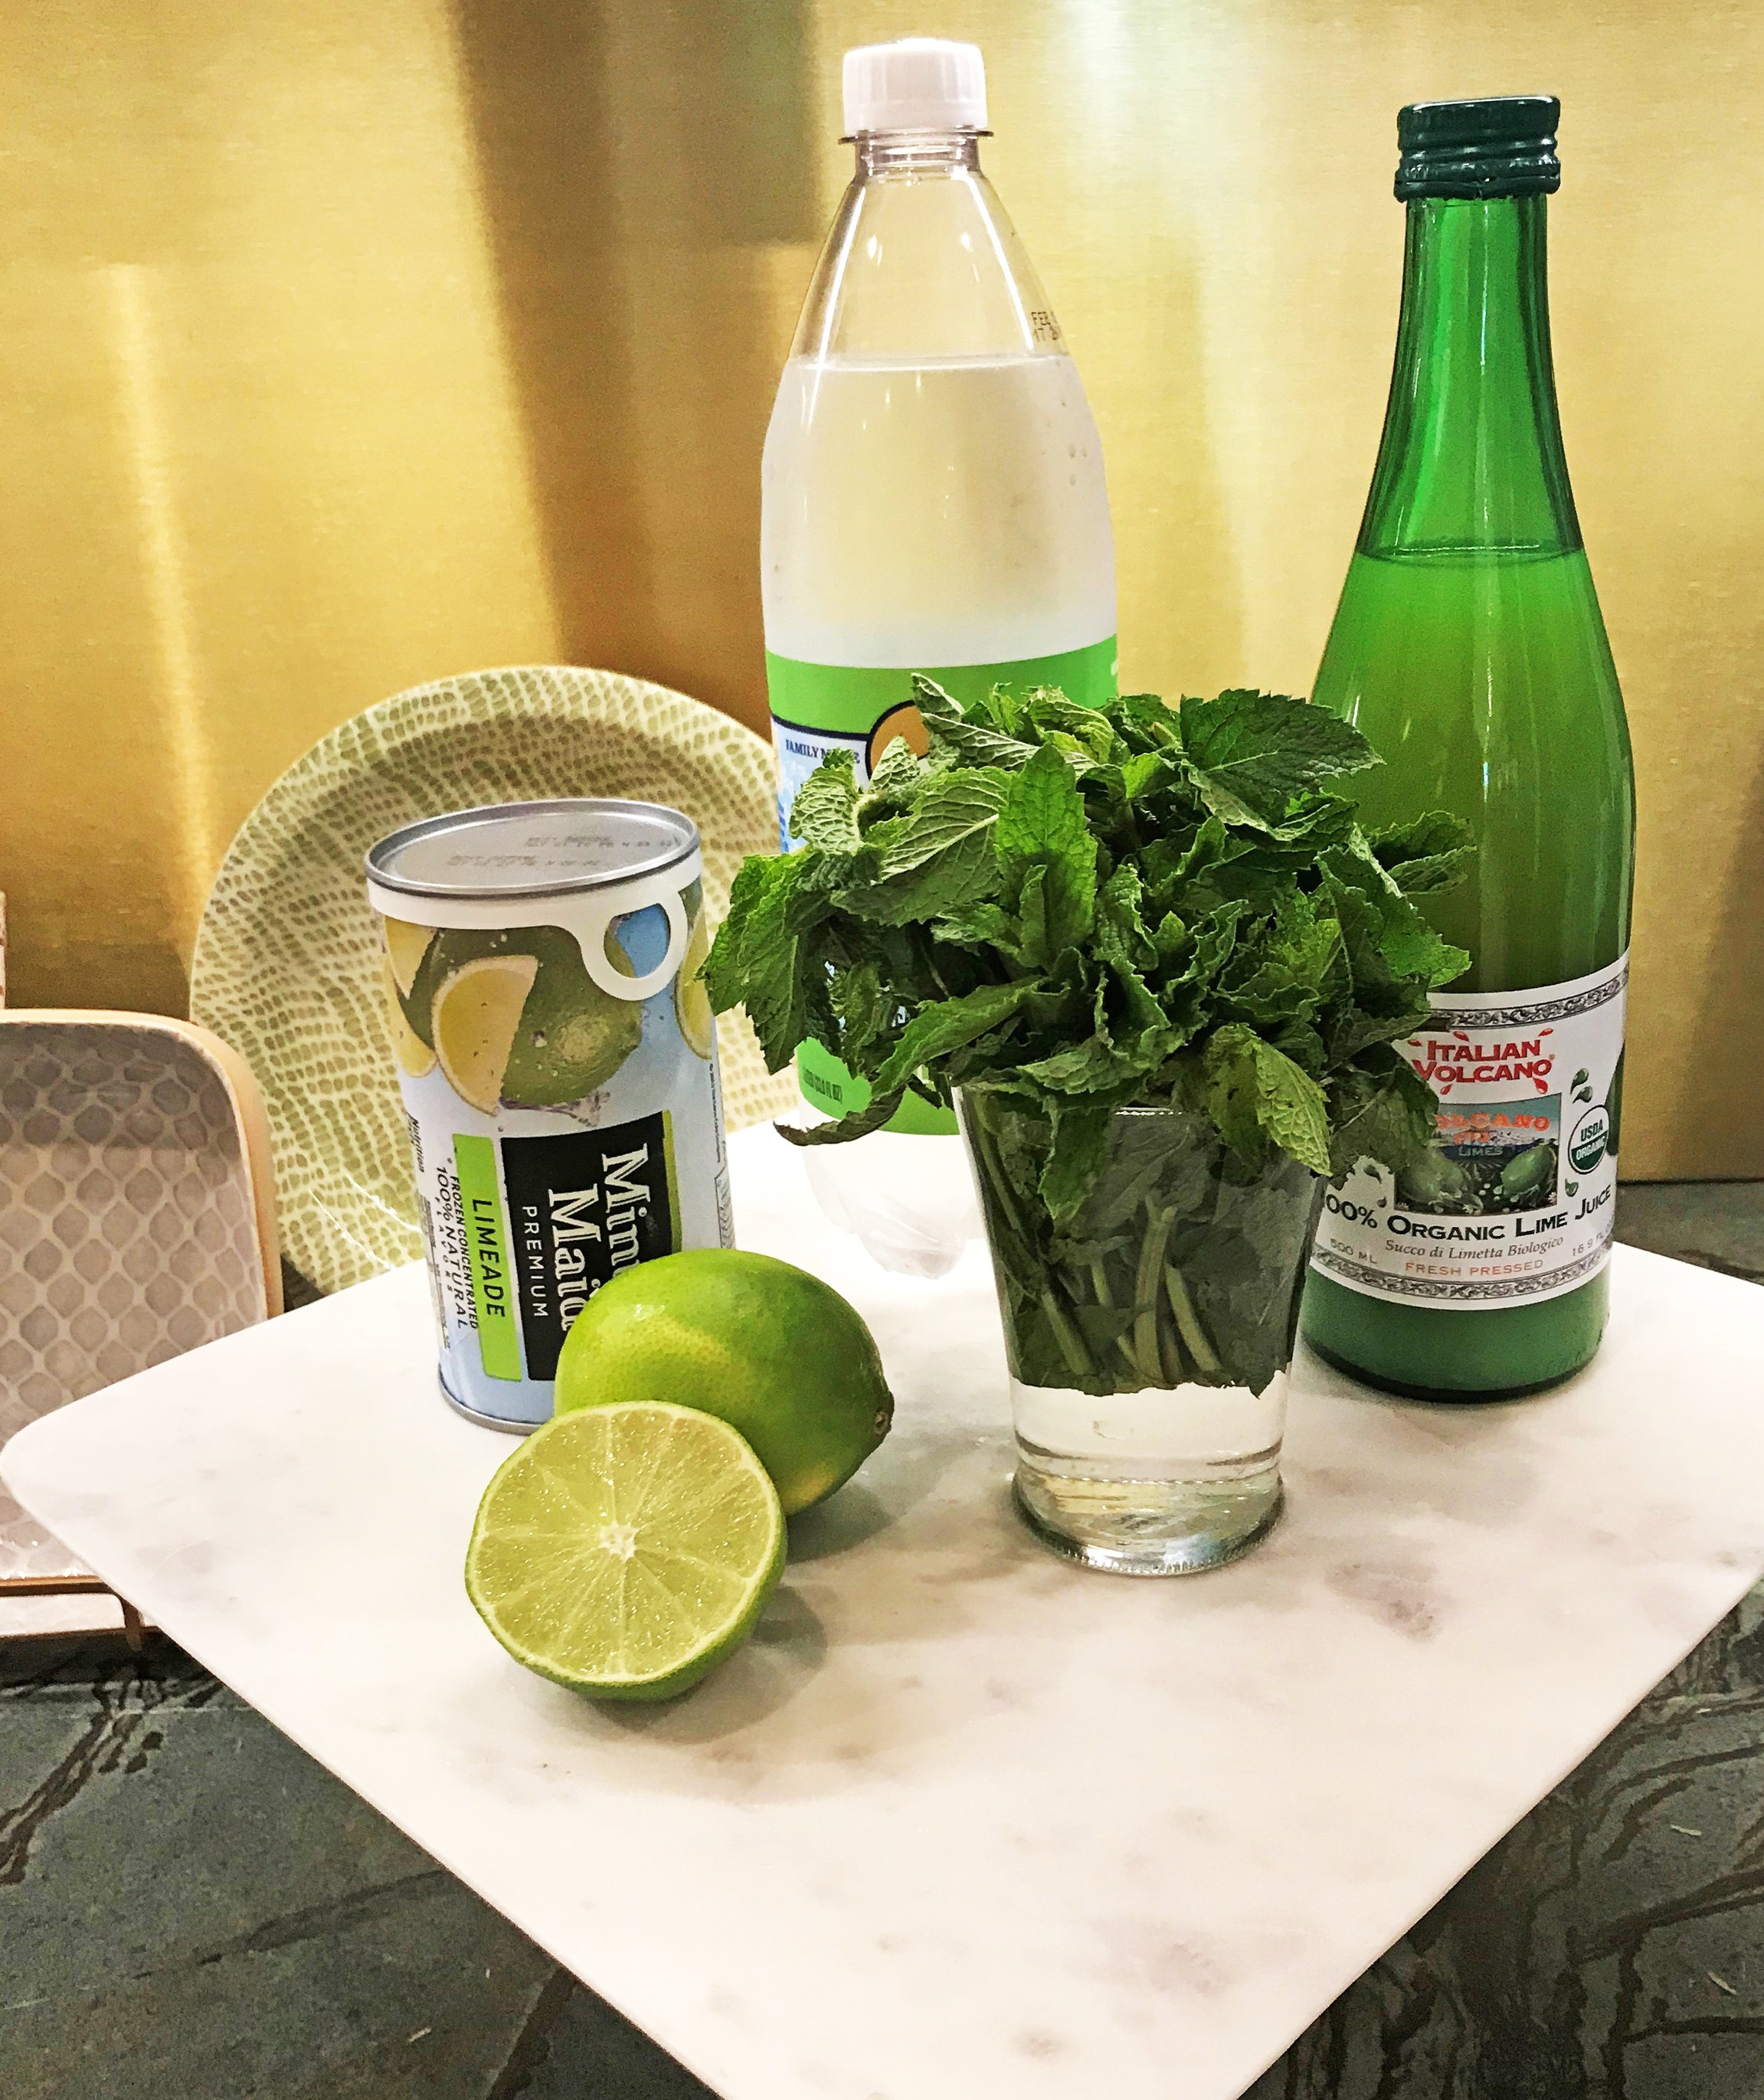 Poland Springs lime flavored sparkling water is my favorite to combine with frozen limeade mix.